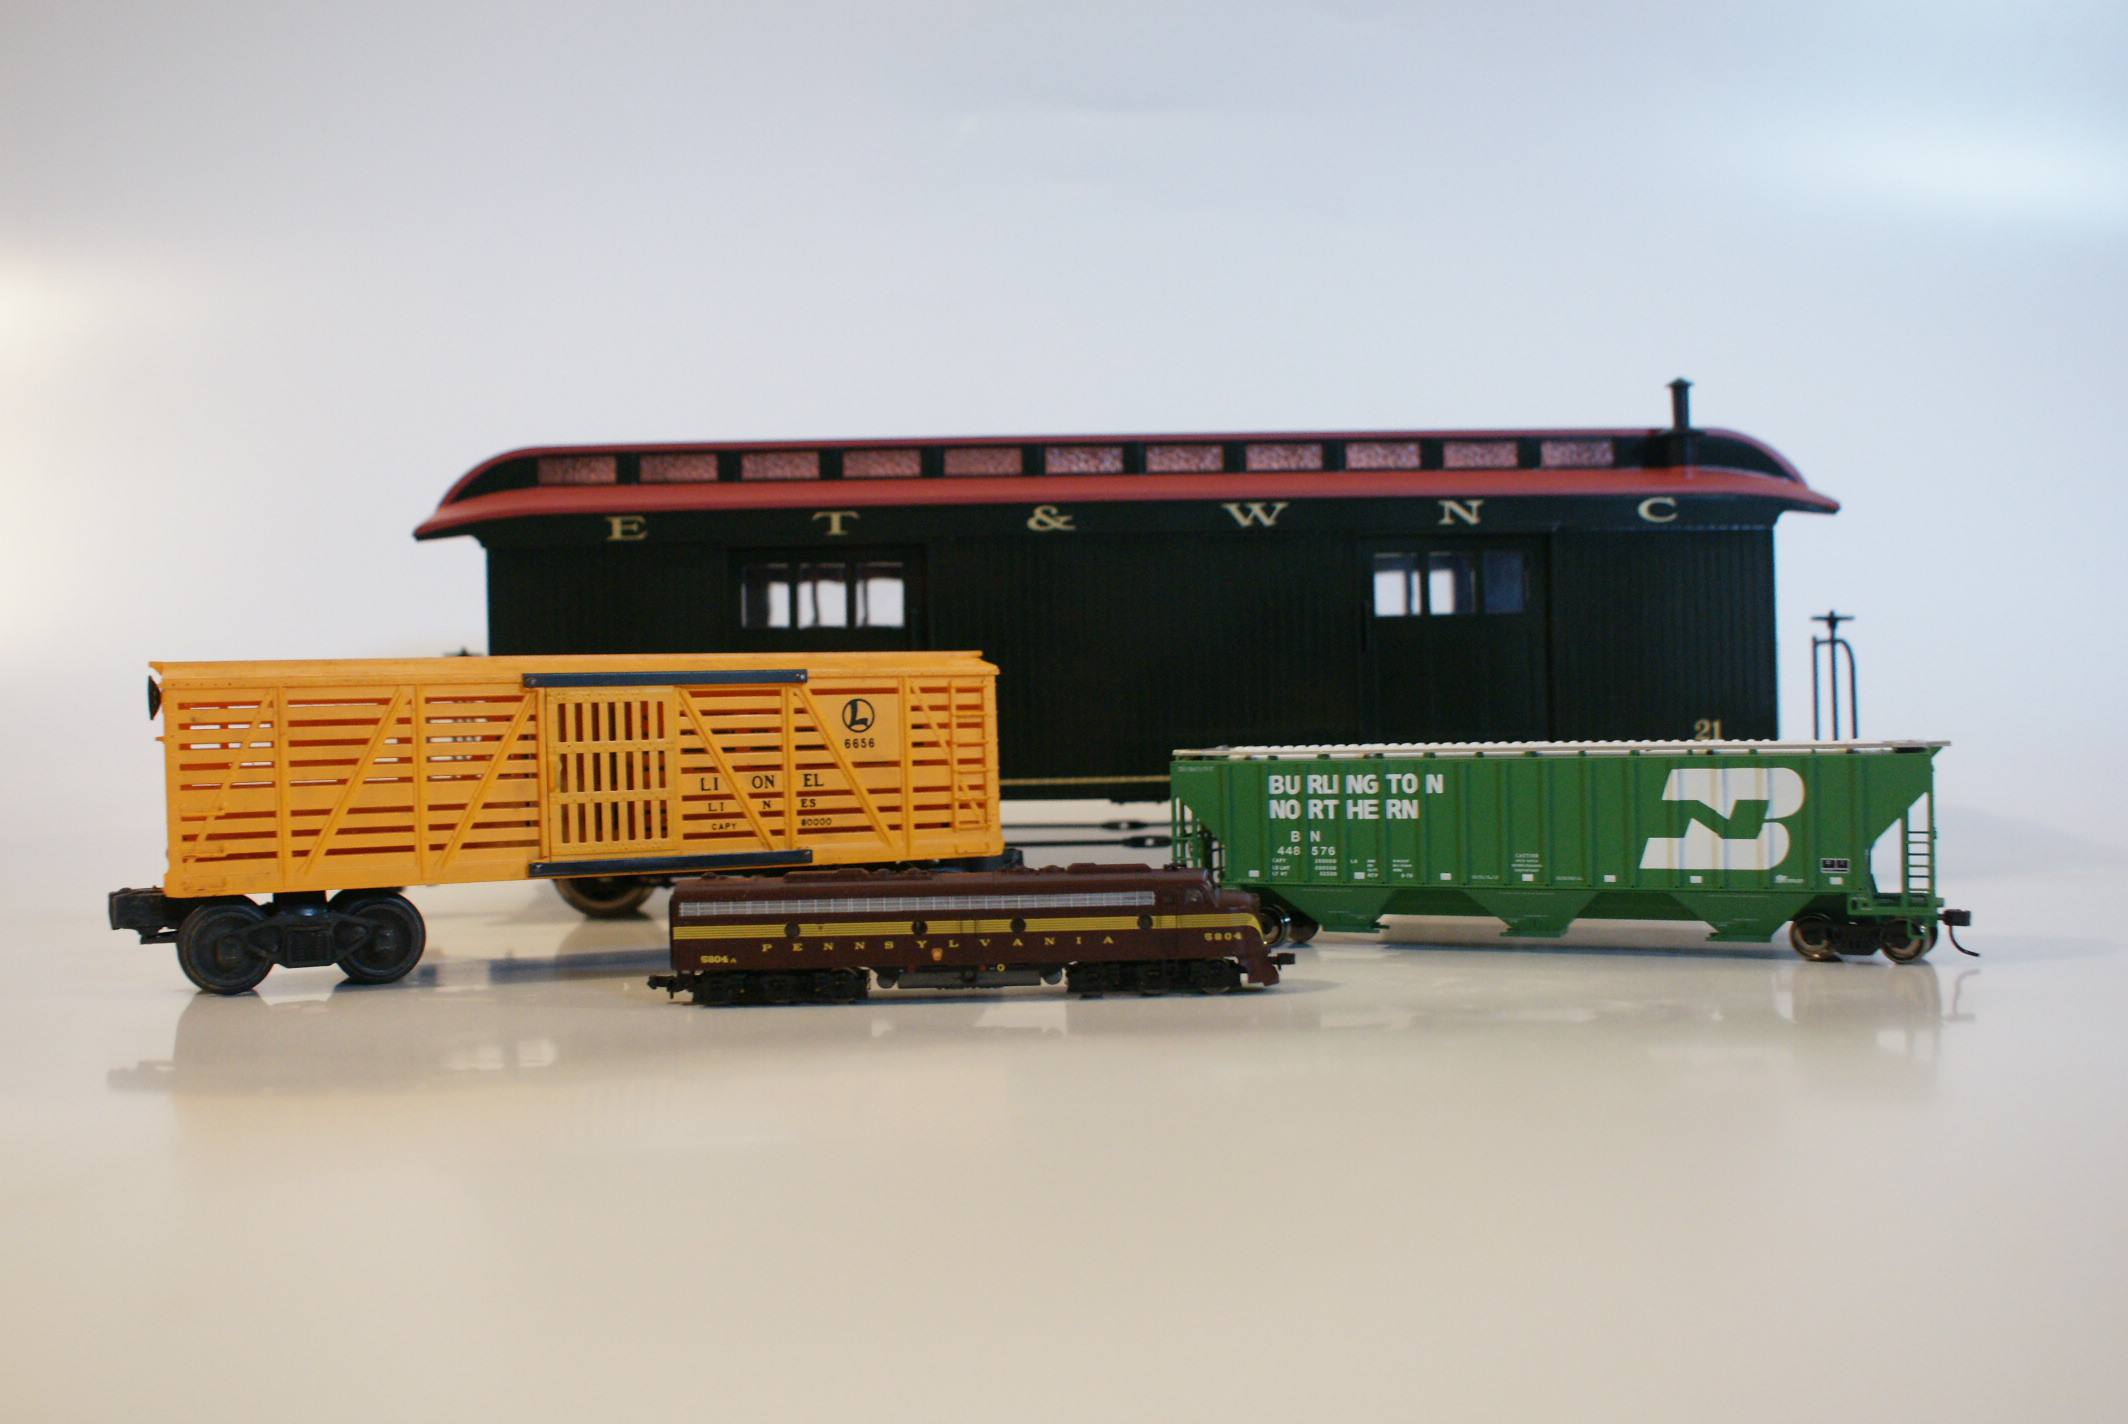 Model trains come in all sizes